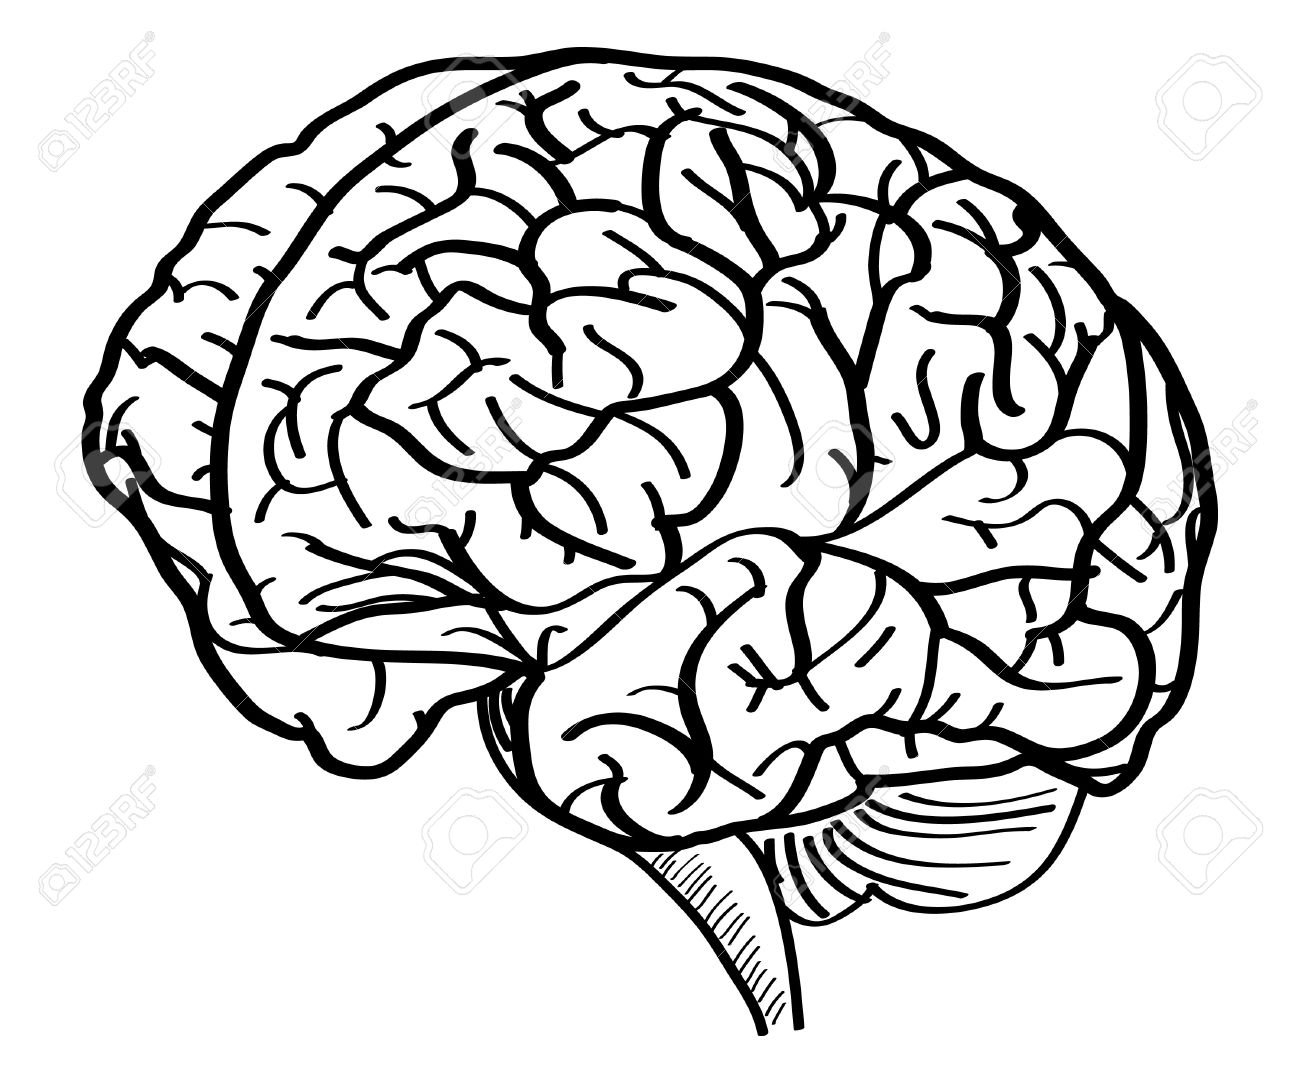 1300x1083 Human Brain Vector Outline Sketched Up, Vector Illustration